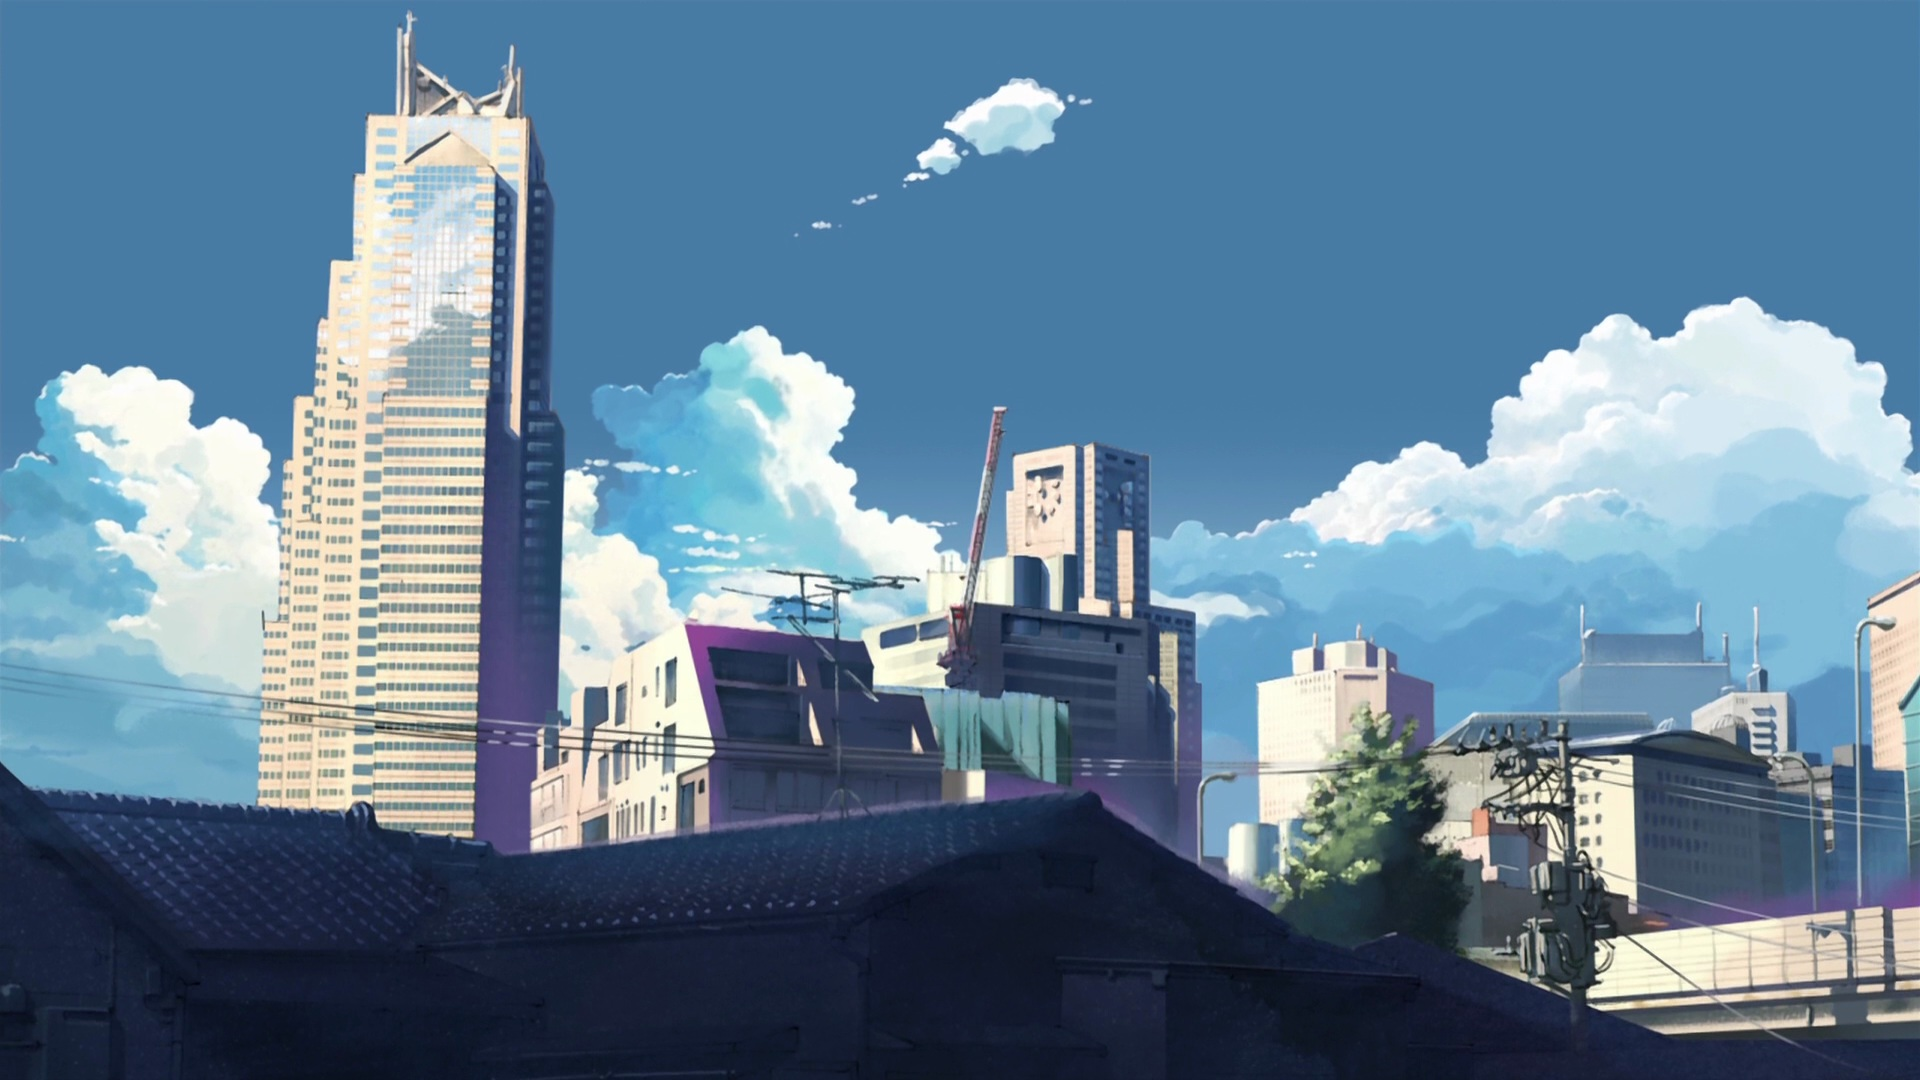 5 Centimeters Per Second Hd Wallpaper Background Image 1920x1080